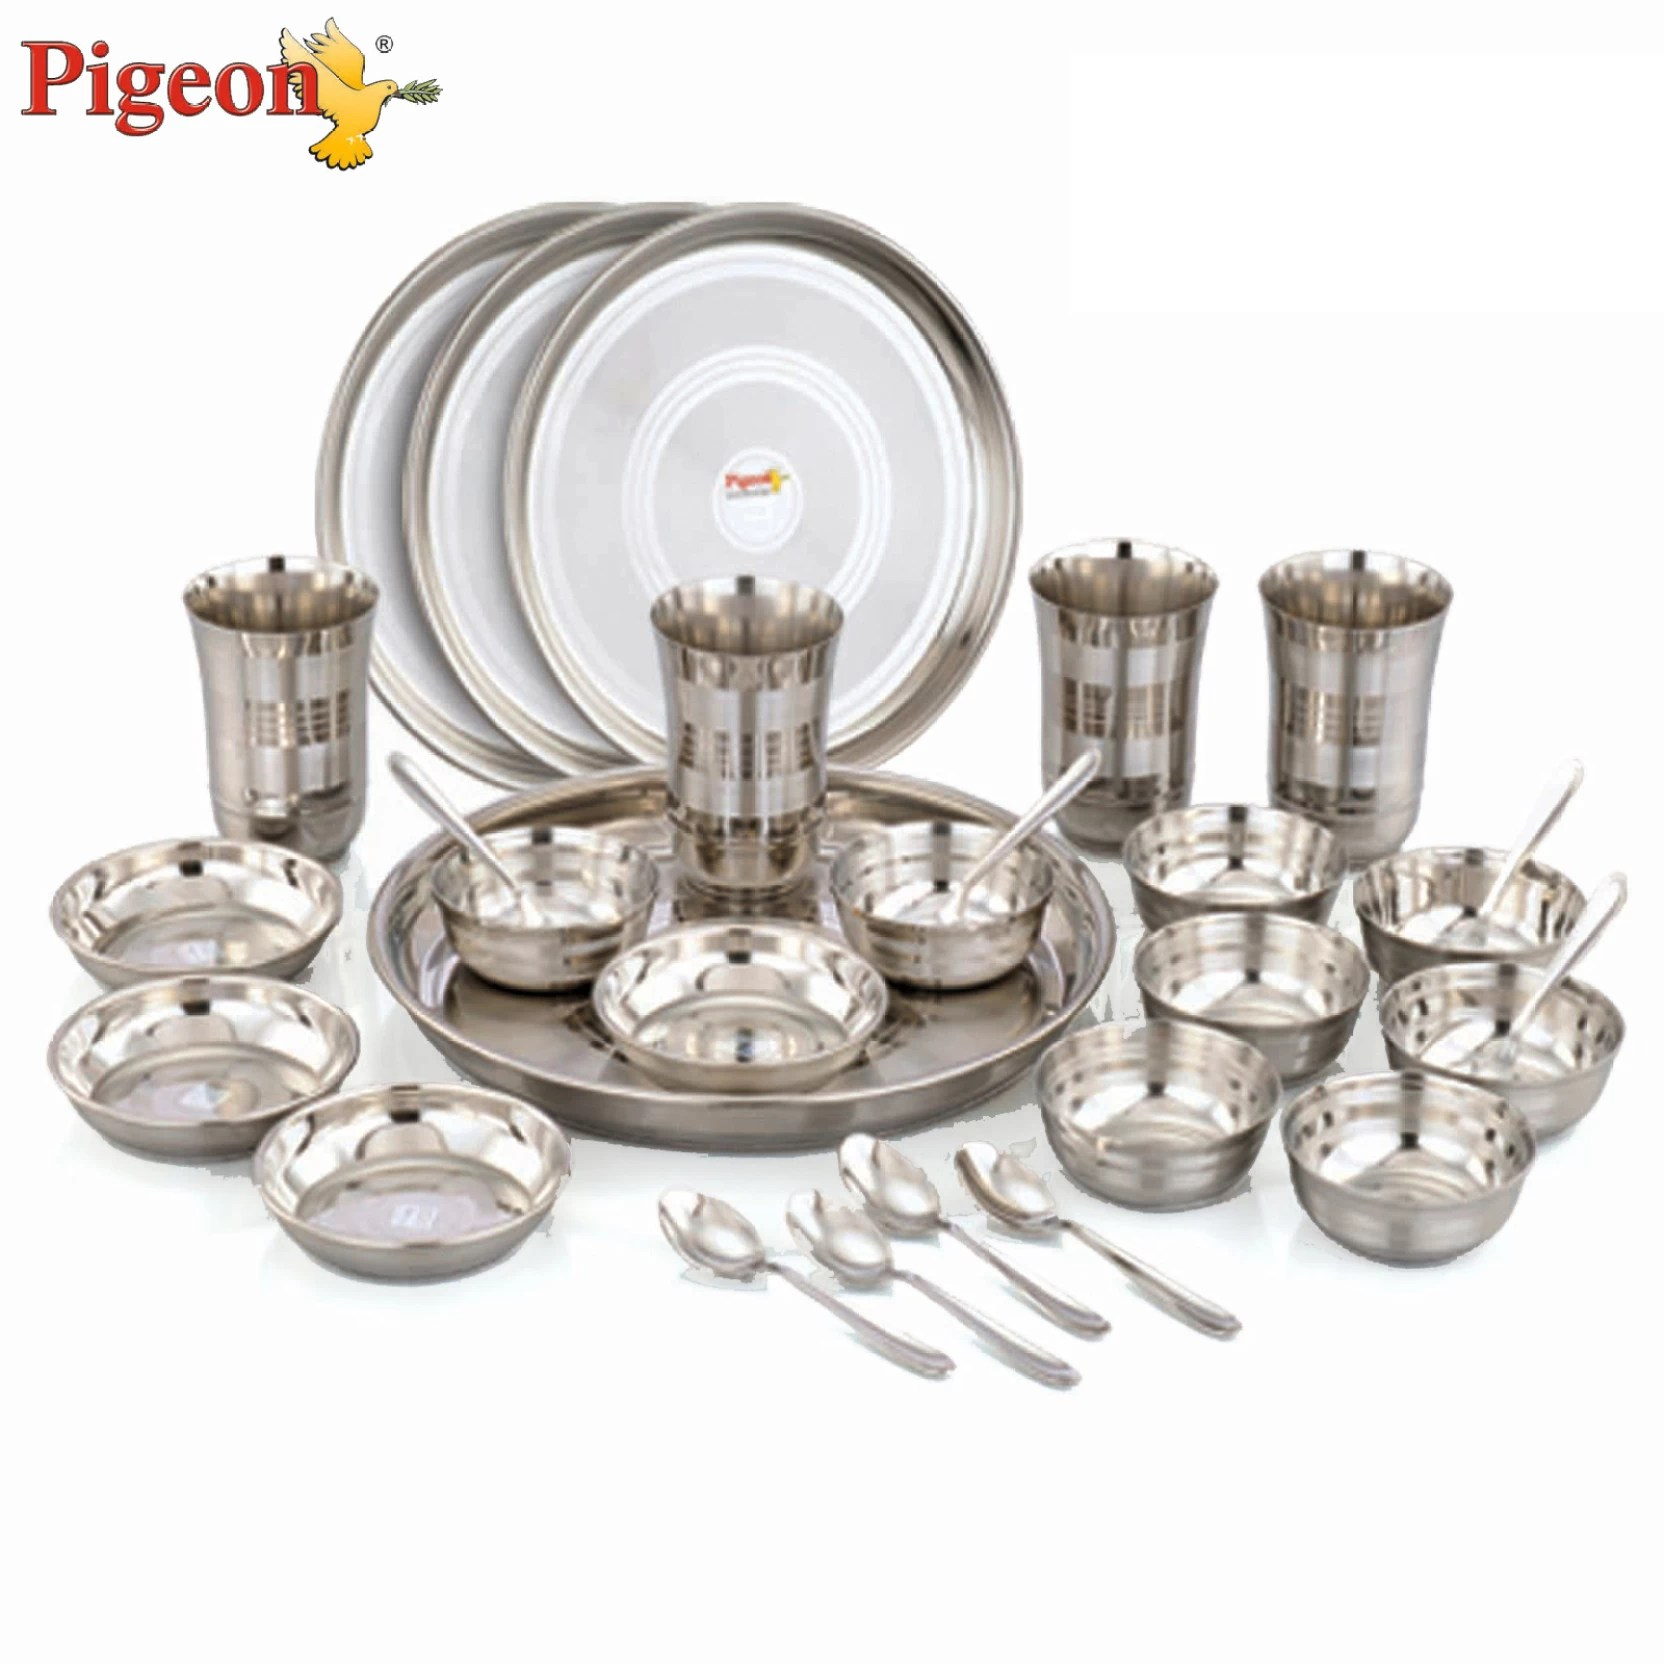 Dinner Set Pigeon Lunch Set Pack Of 28 Dinner Set Price In India